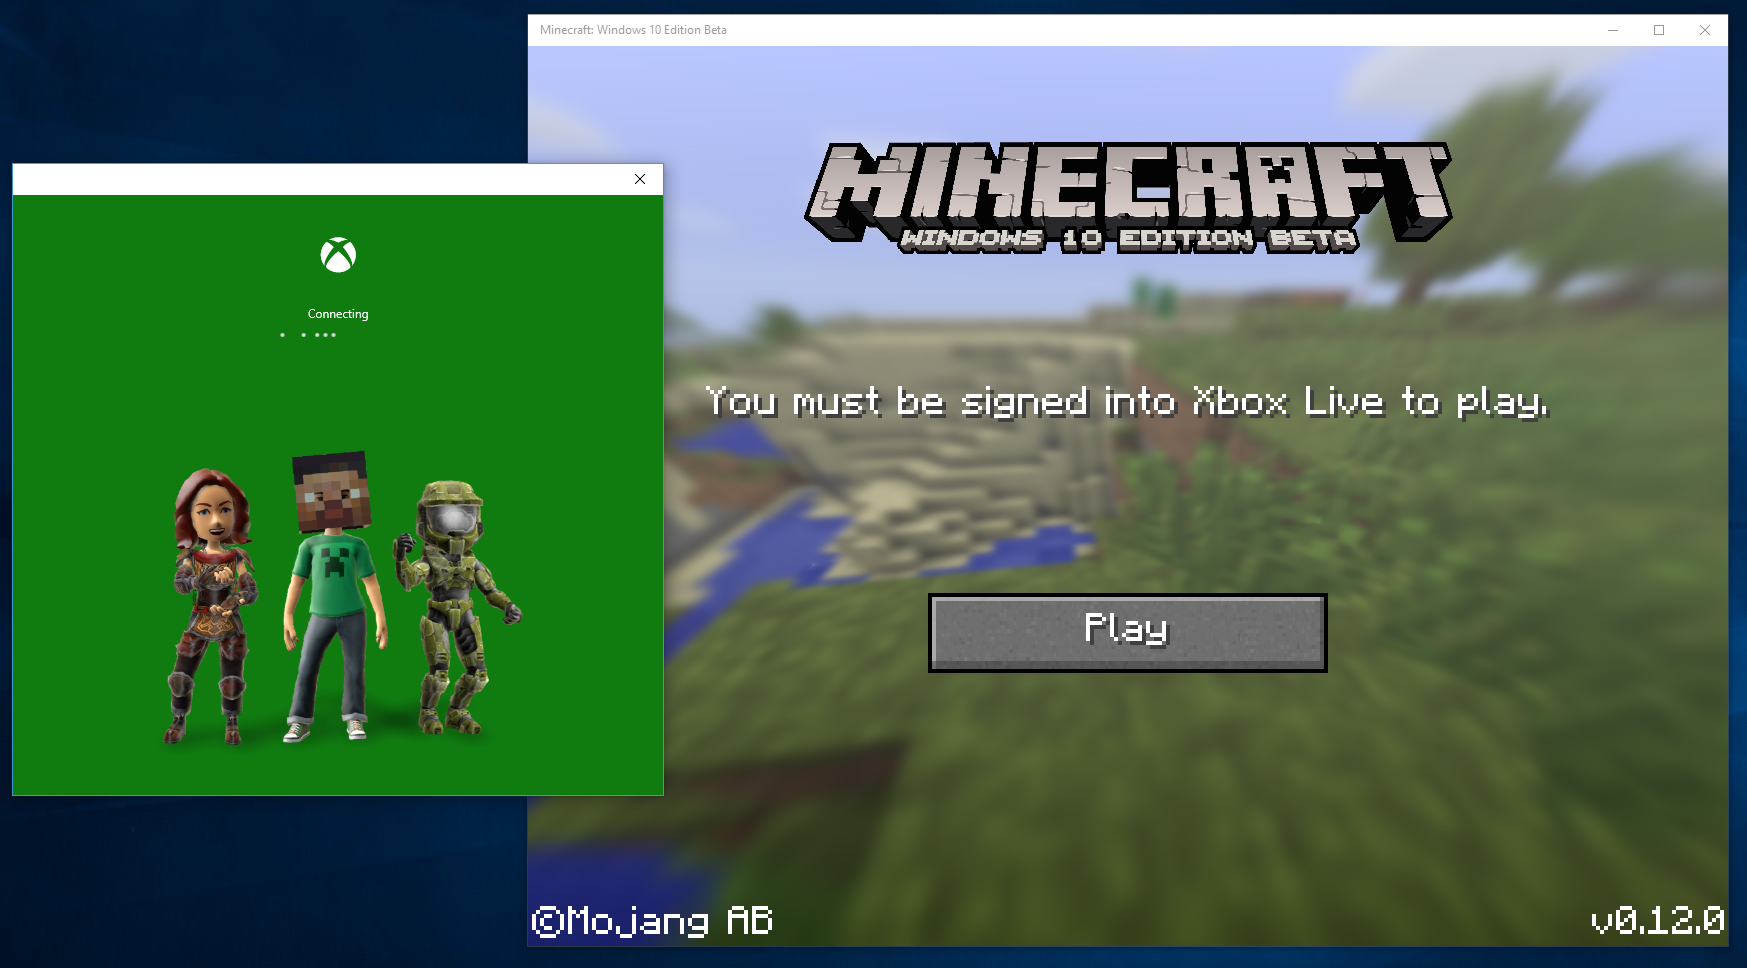 Minecraft Windows Beta Available To Download For Free If You - Skins para minecraft windows 10 edition beta